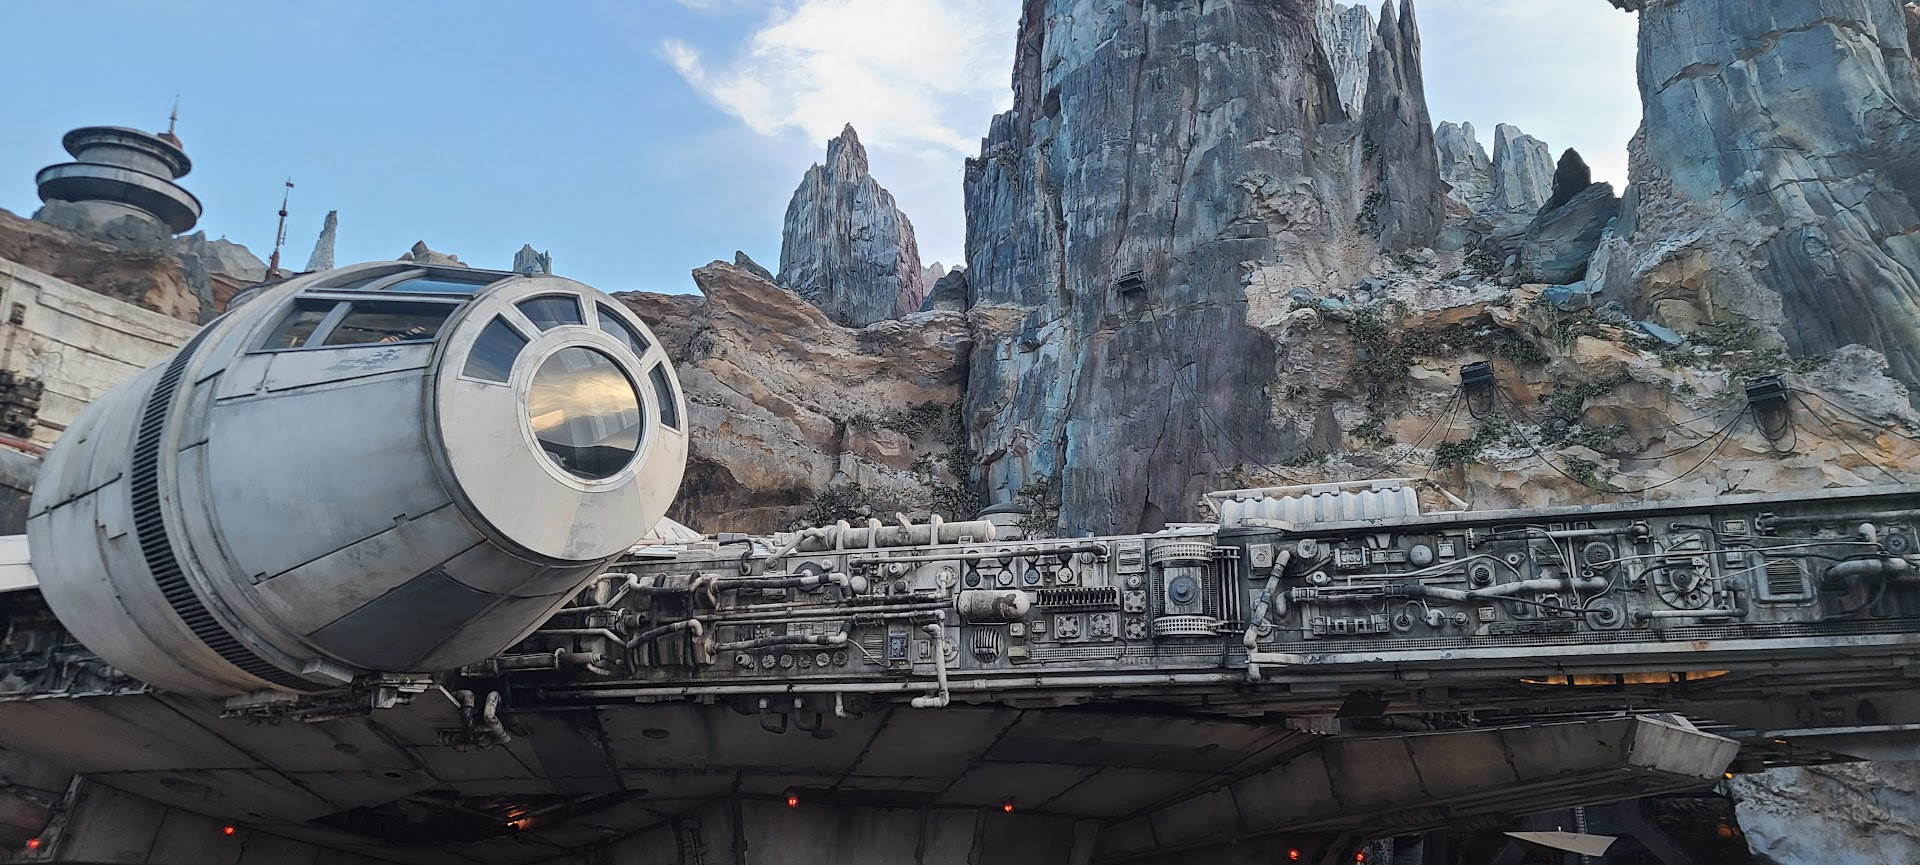 What Parks At Disney World Have The Most Rides? Tips 5